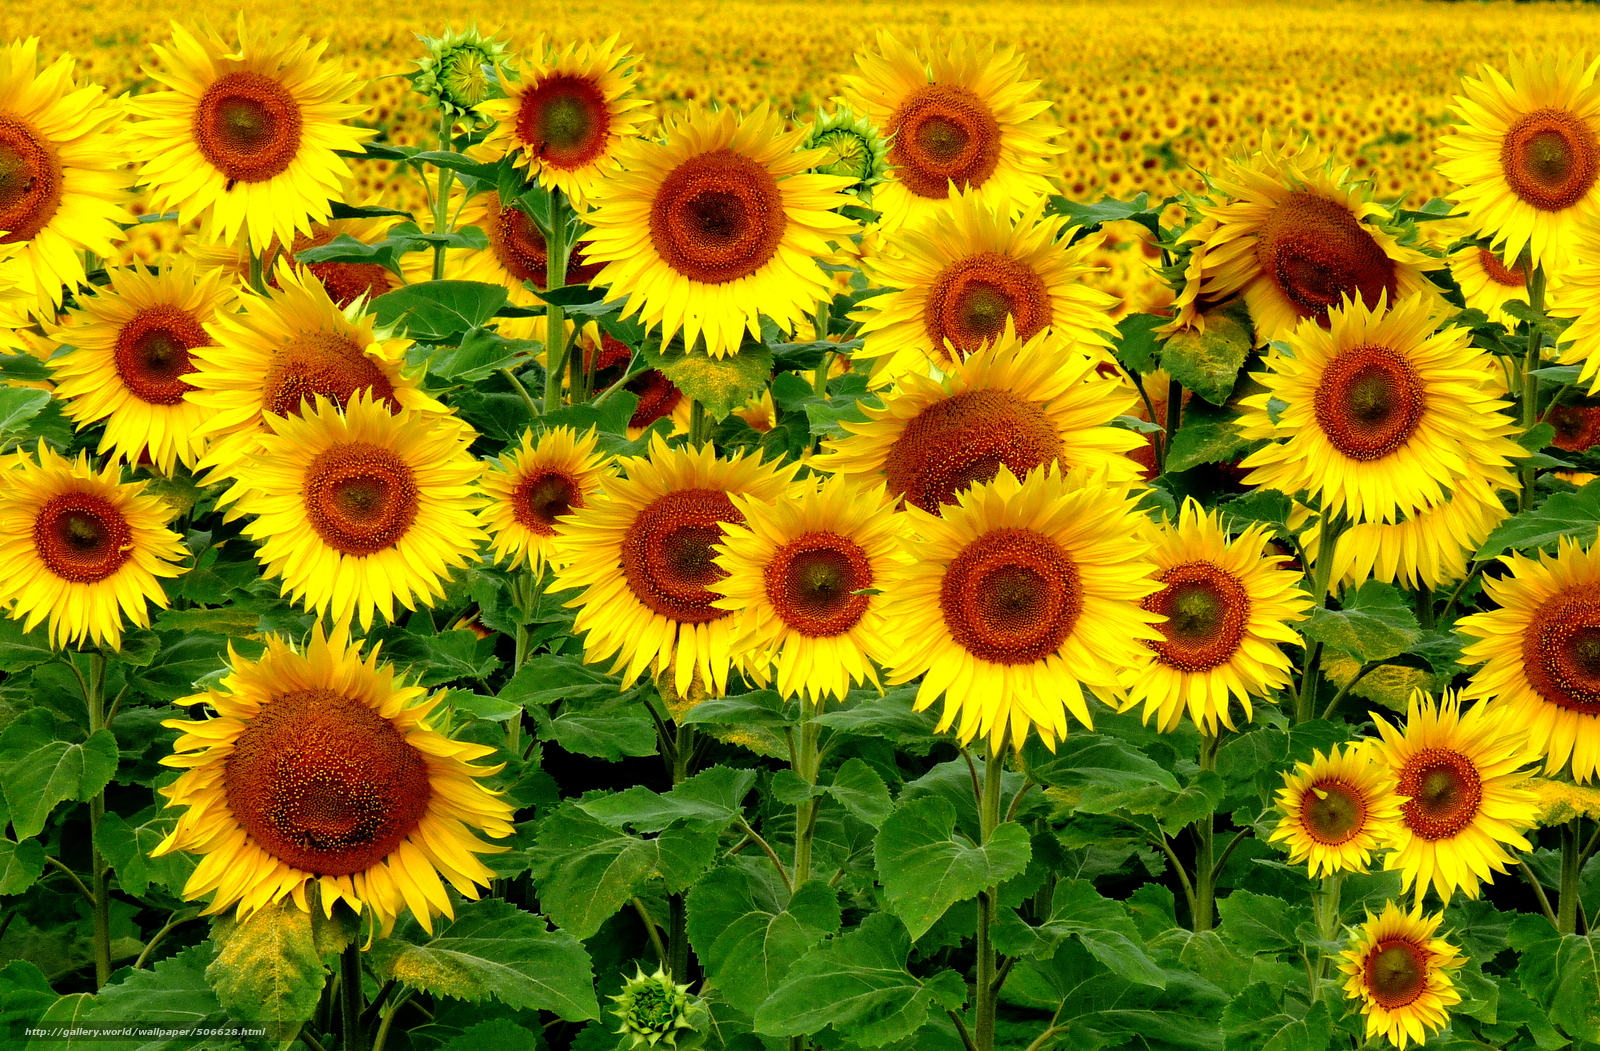 A Line from Linda Sunflowers in a Field